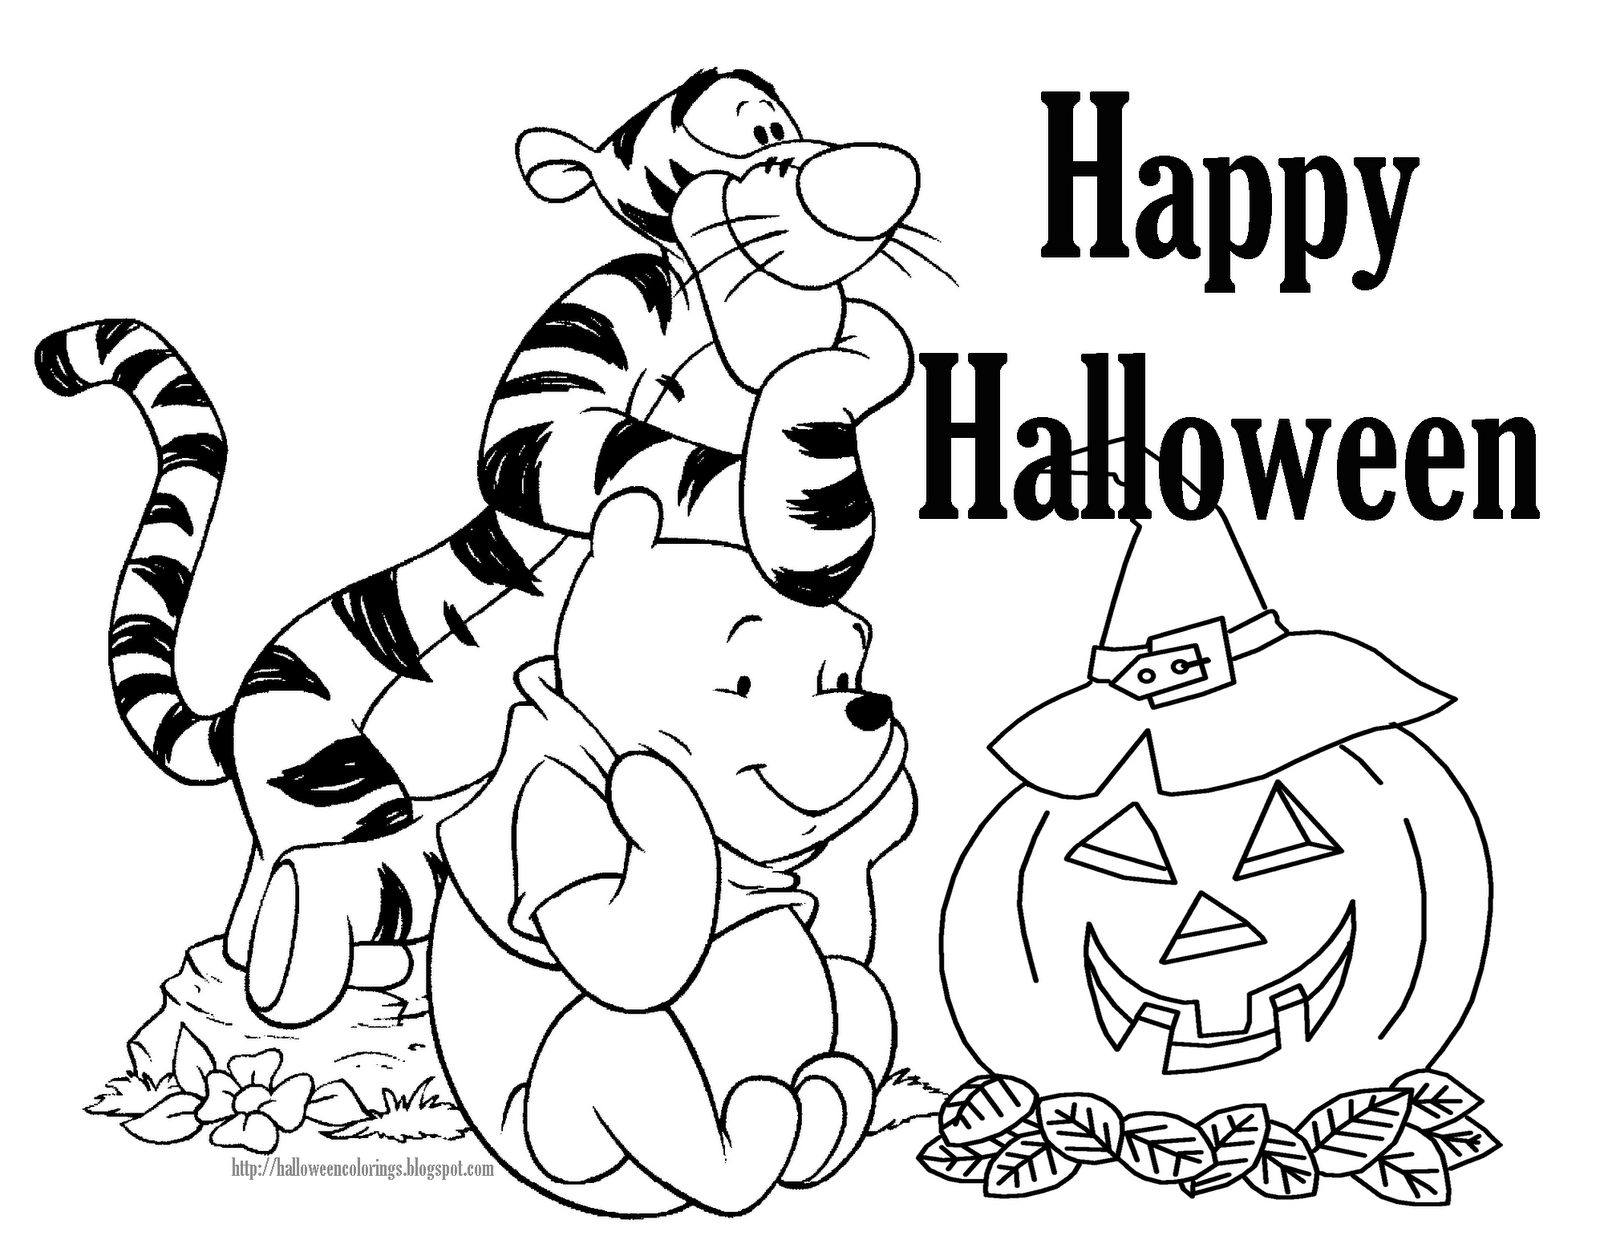 halloween coloring pages printable - Free Halloween coloring pages, Halloween printables